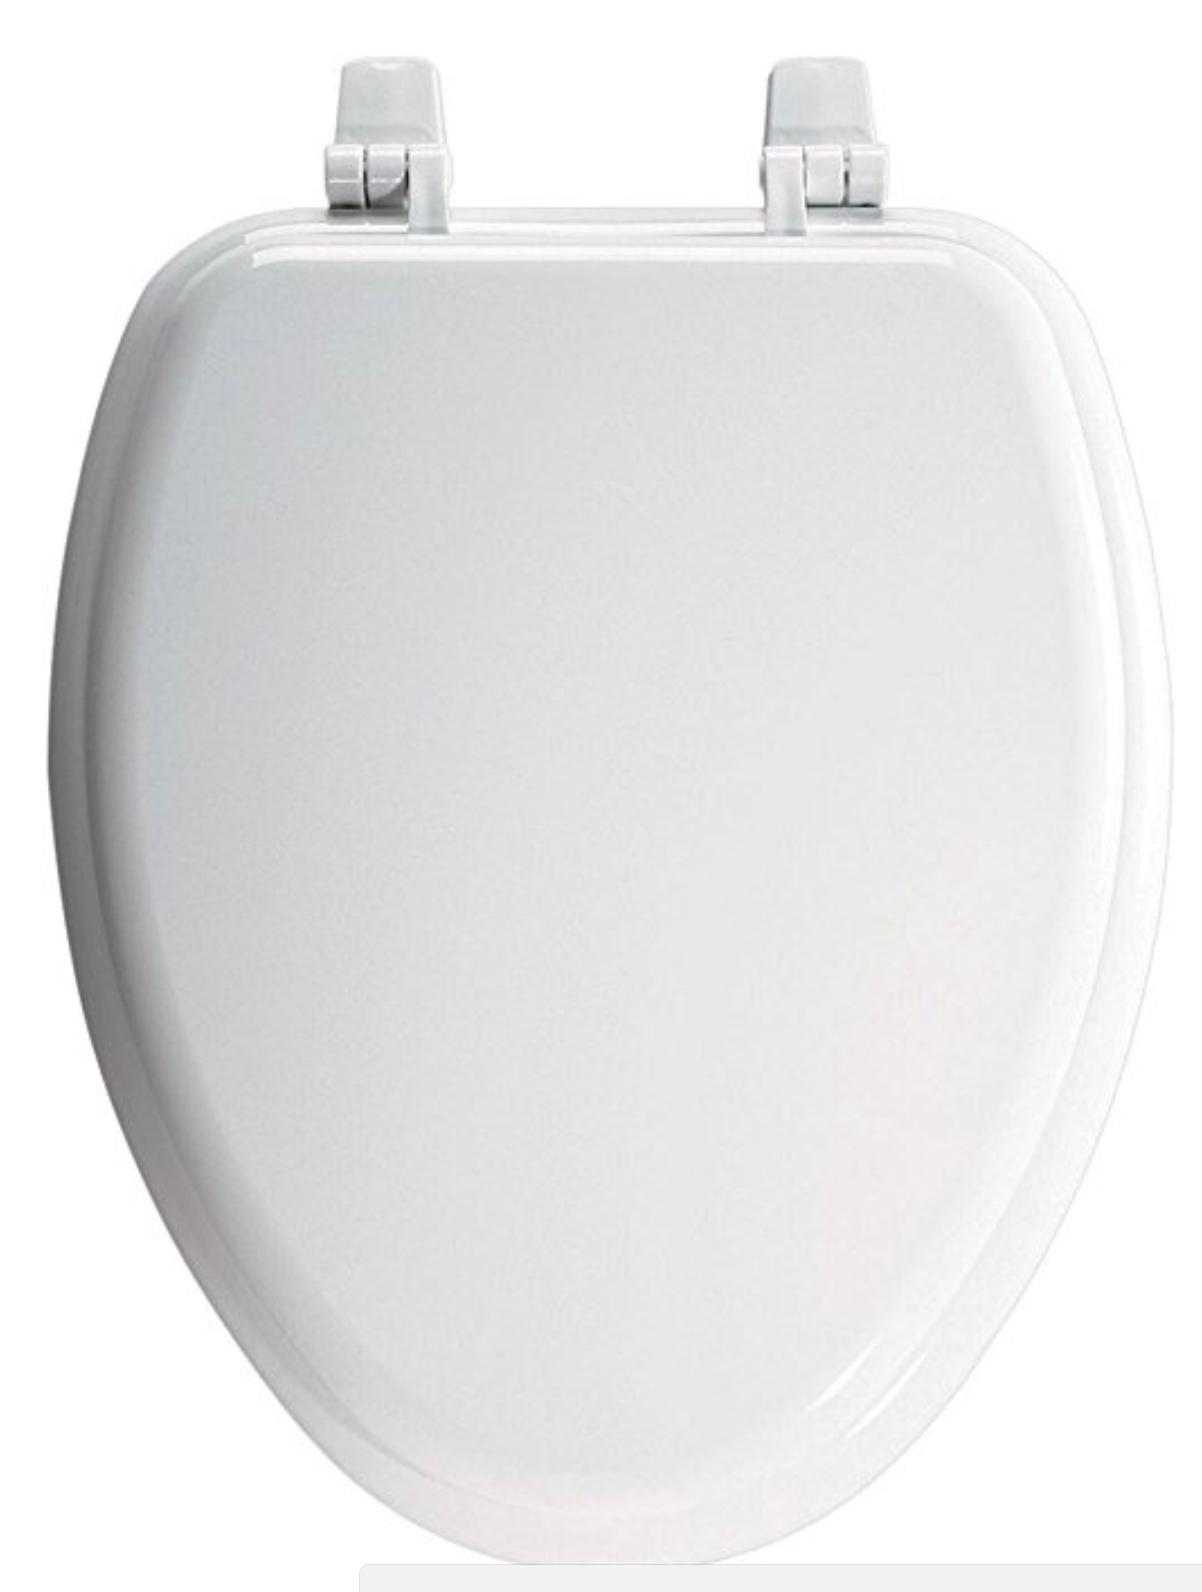 Church 1400TTC Elongated Wood Toilet Seat White